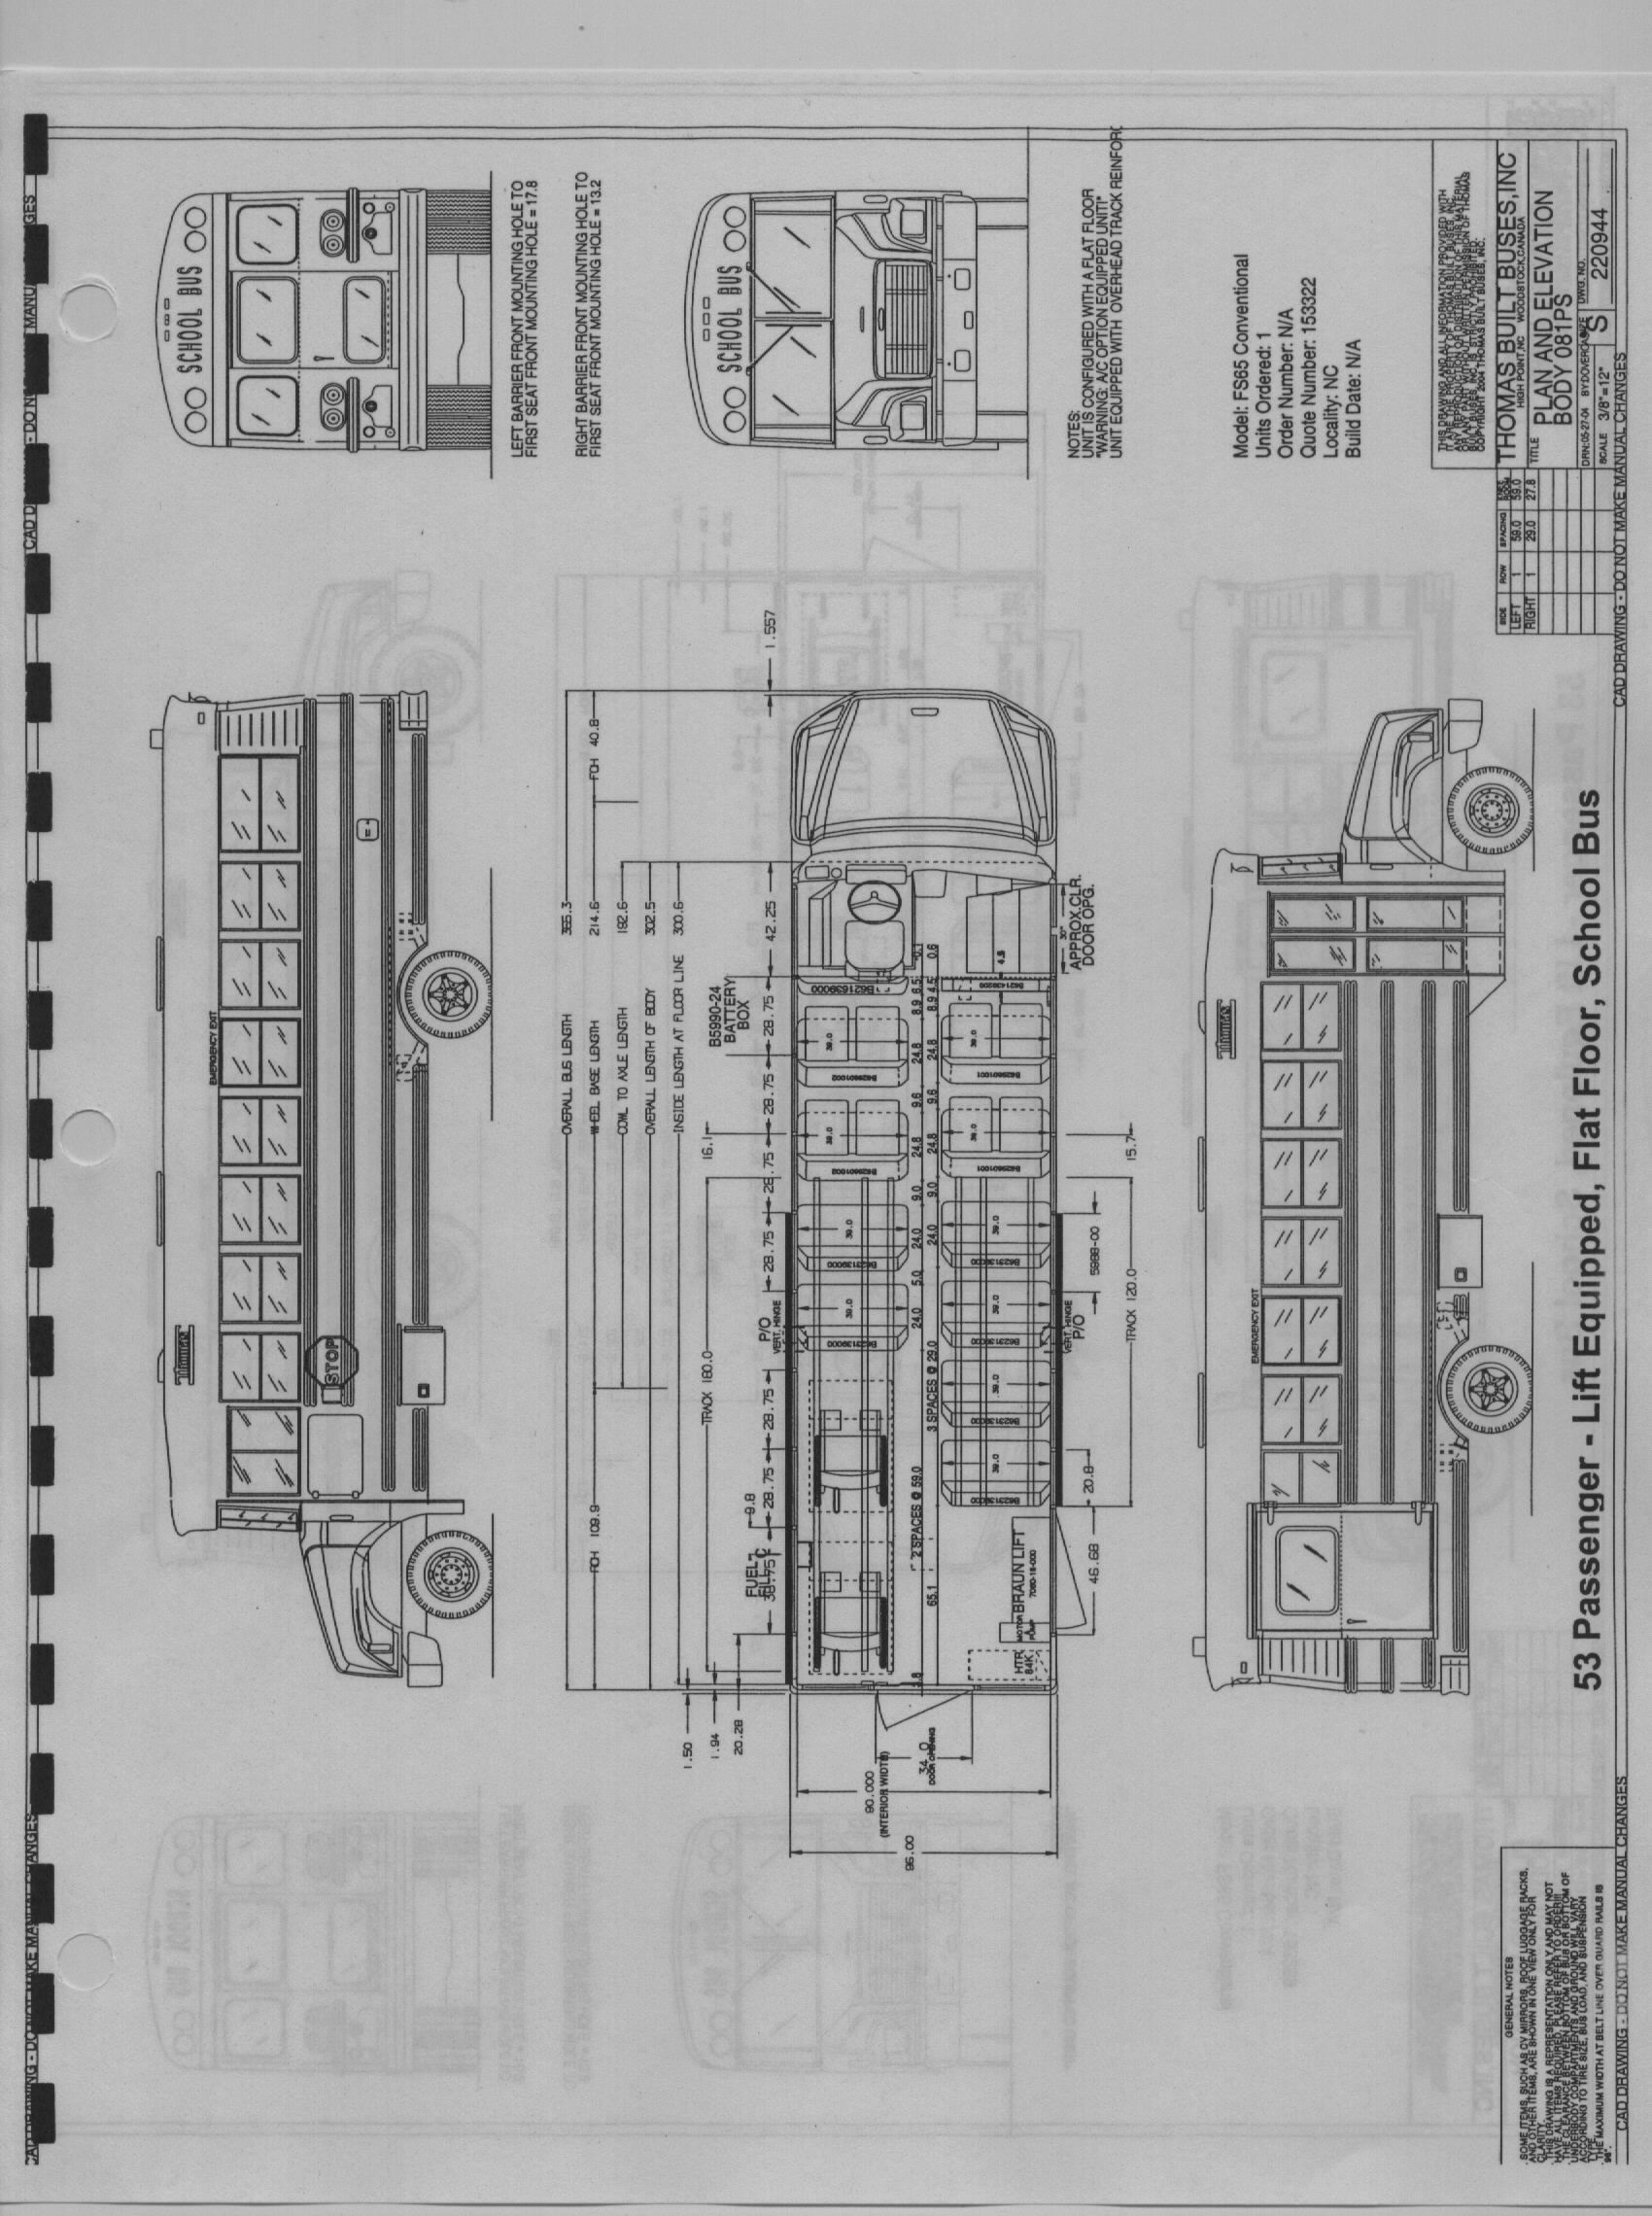 school bus models wiring diagram 1486 international tractor #3